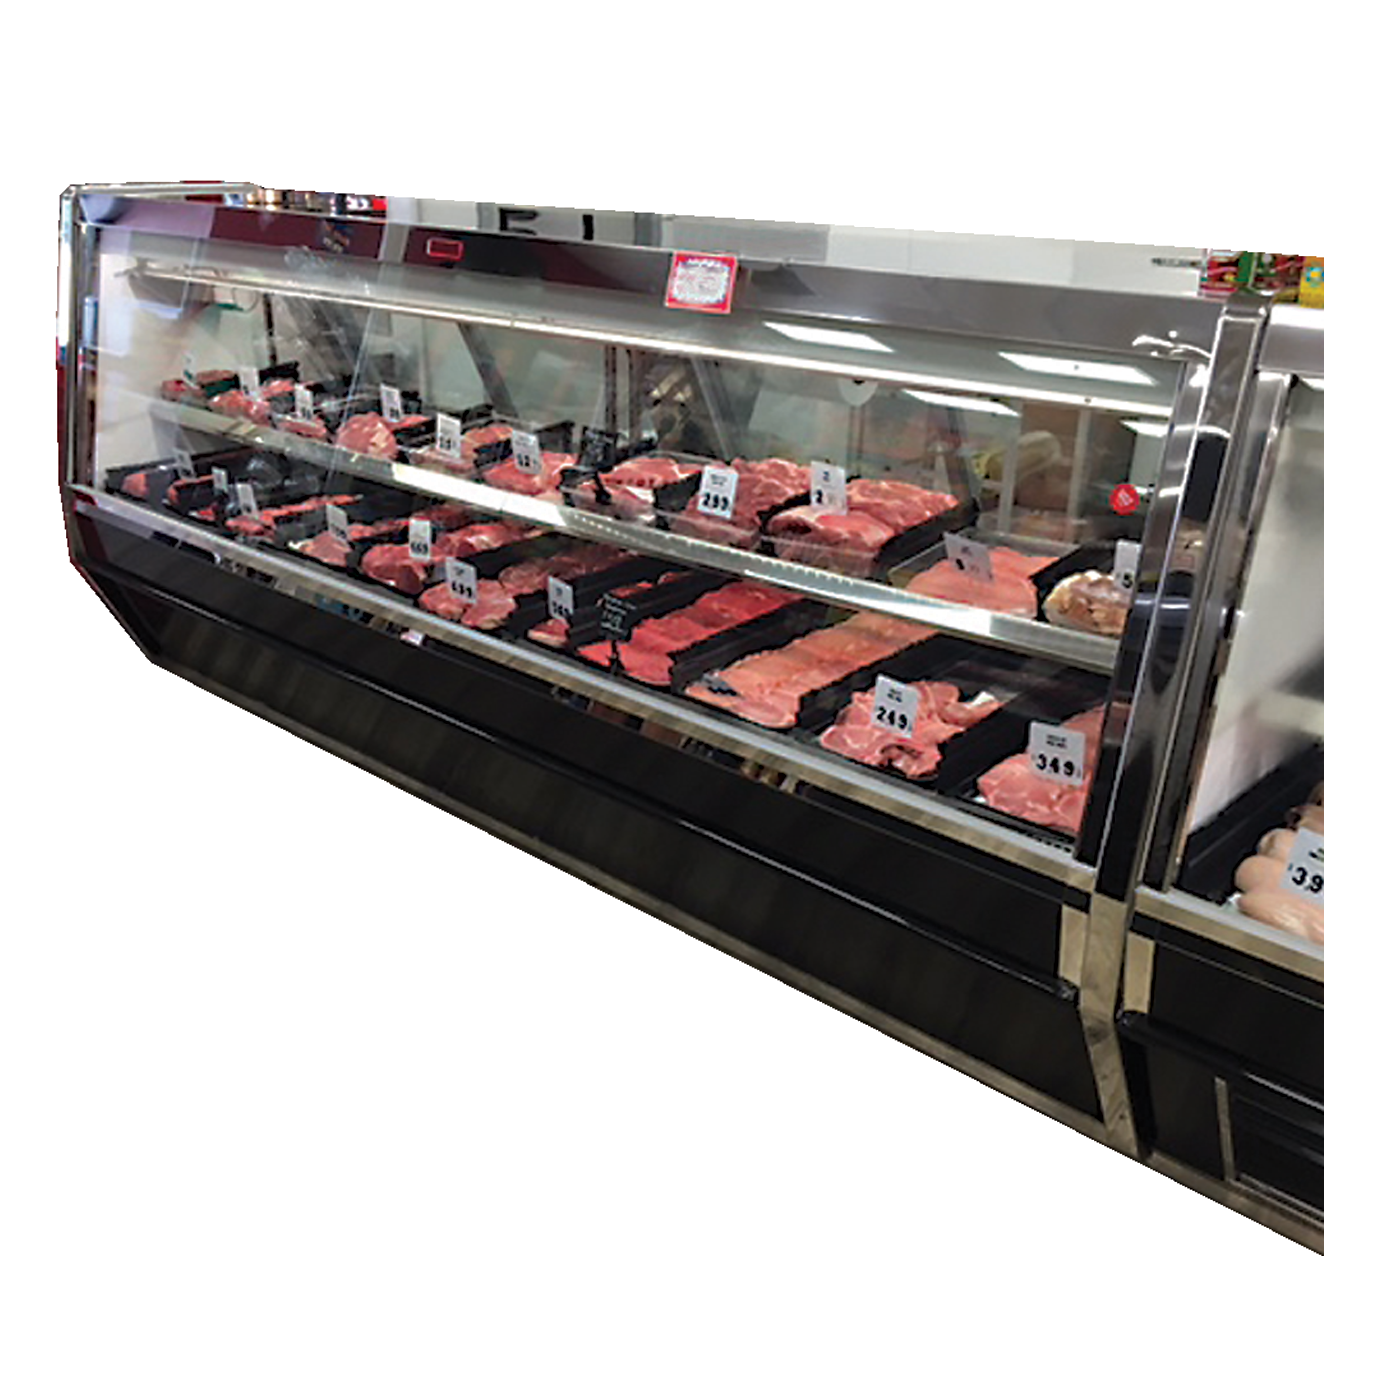 Howard-McCray R-CMS40E-8-BE-LED display case, red meat deli